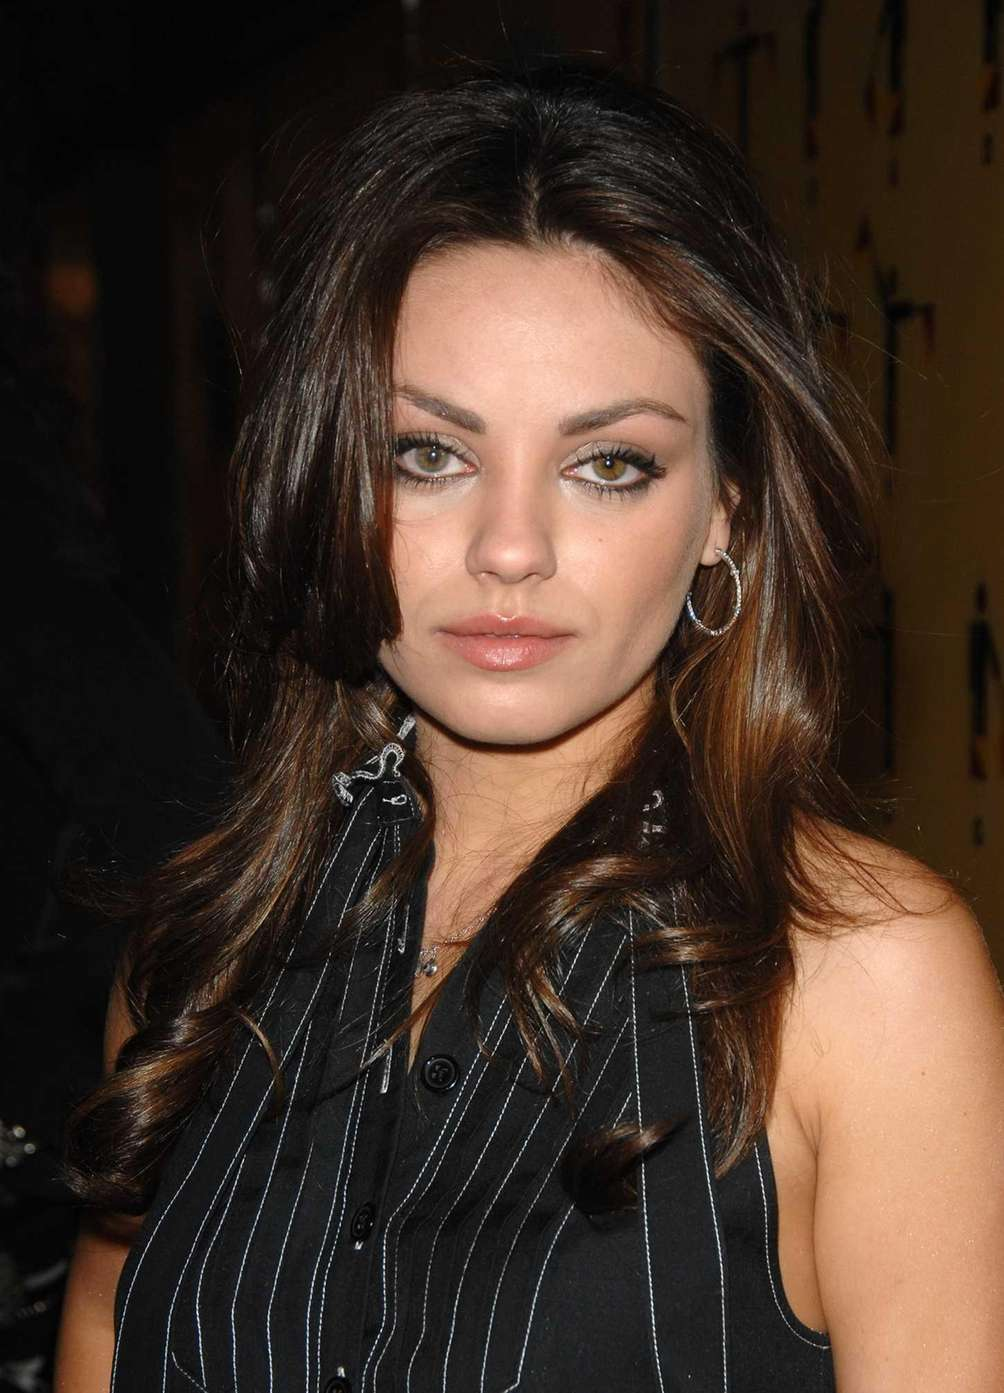 Mila Kunis moved from Ukraine to Los Angeles